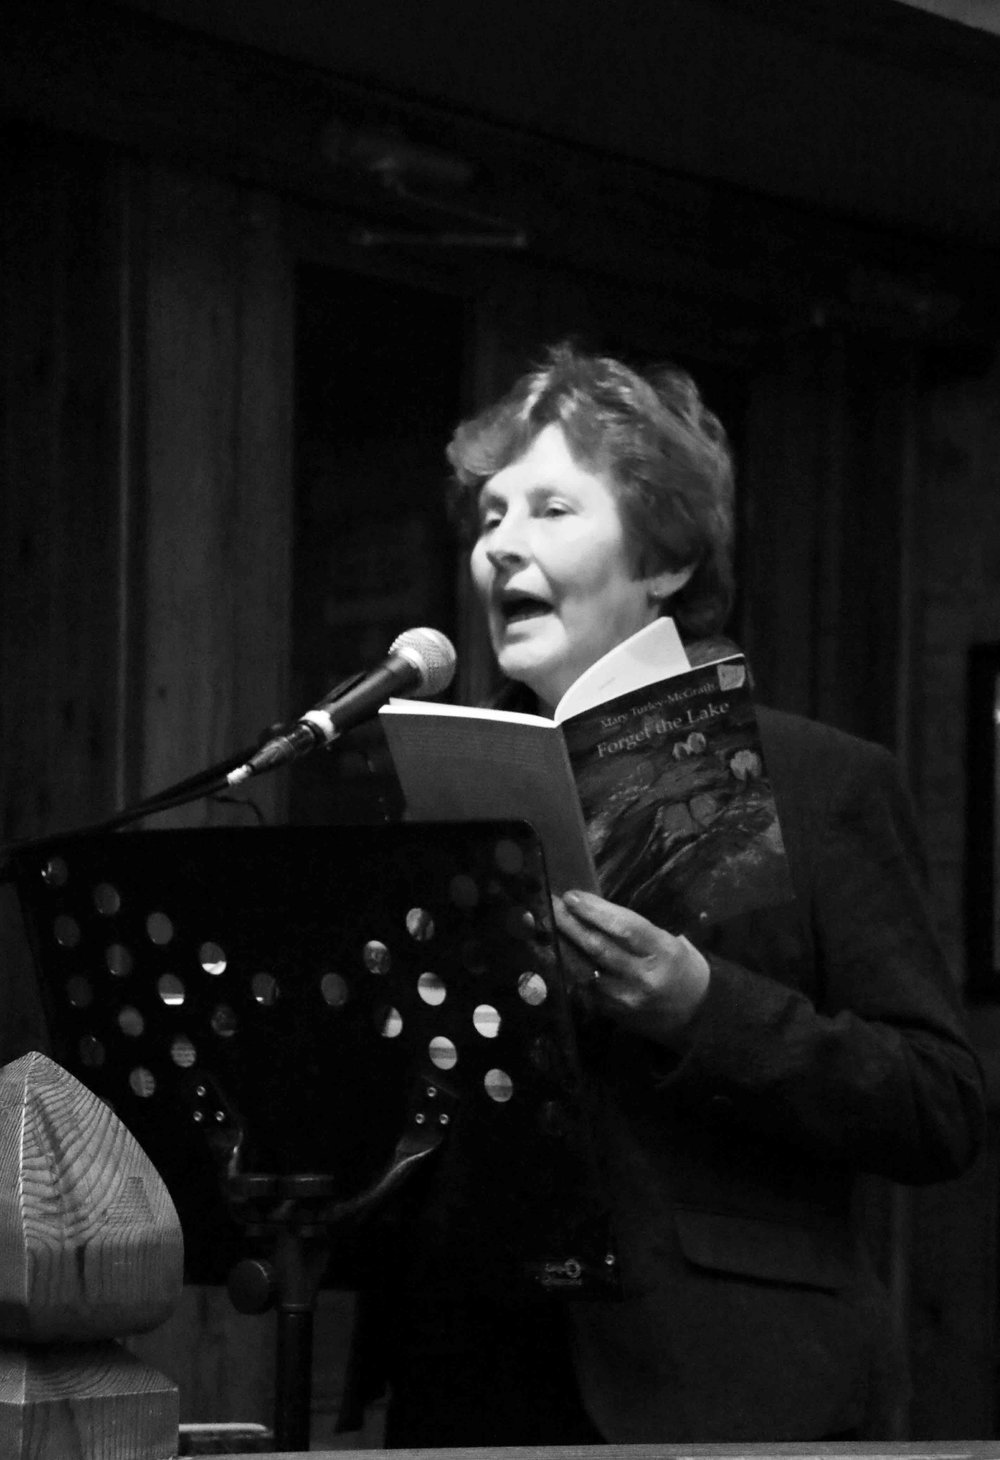 Poetry Reading with Mick Delap - Allingham Festival 2016, Ballyshannon-13.jpg